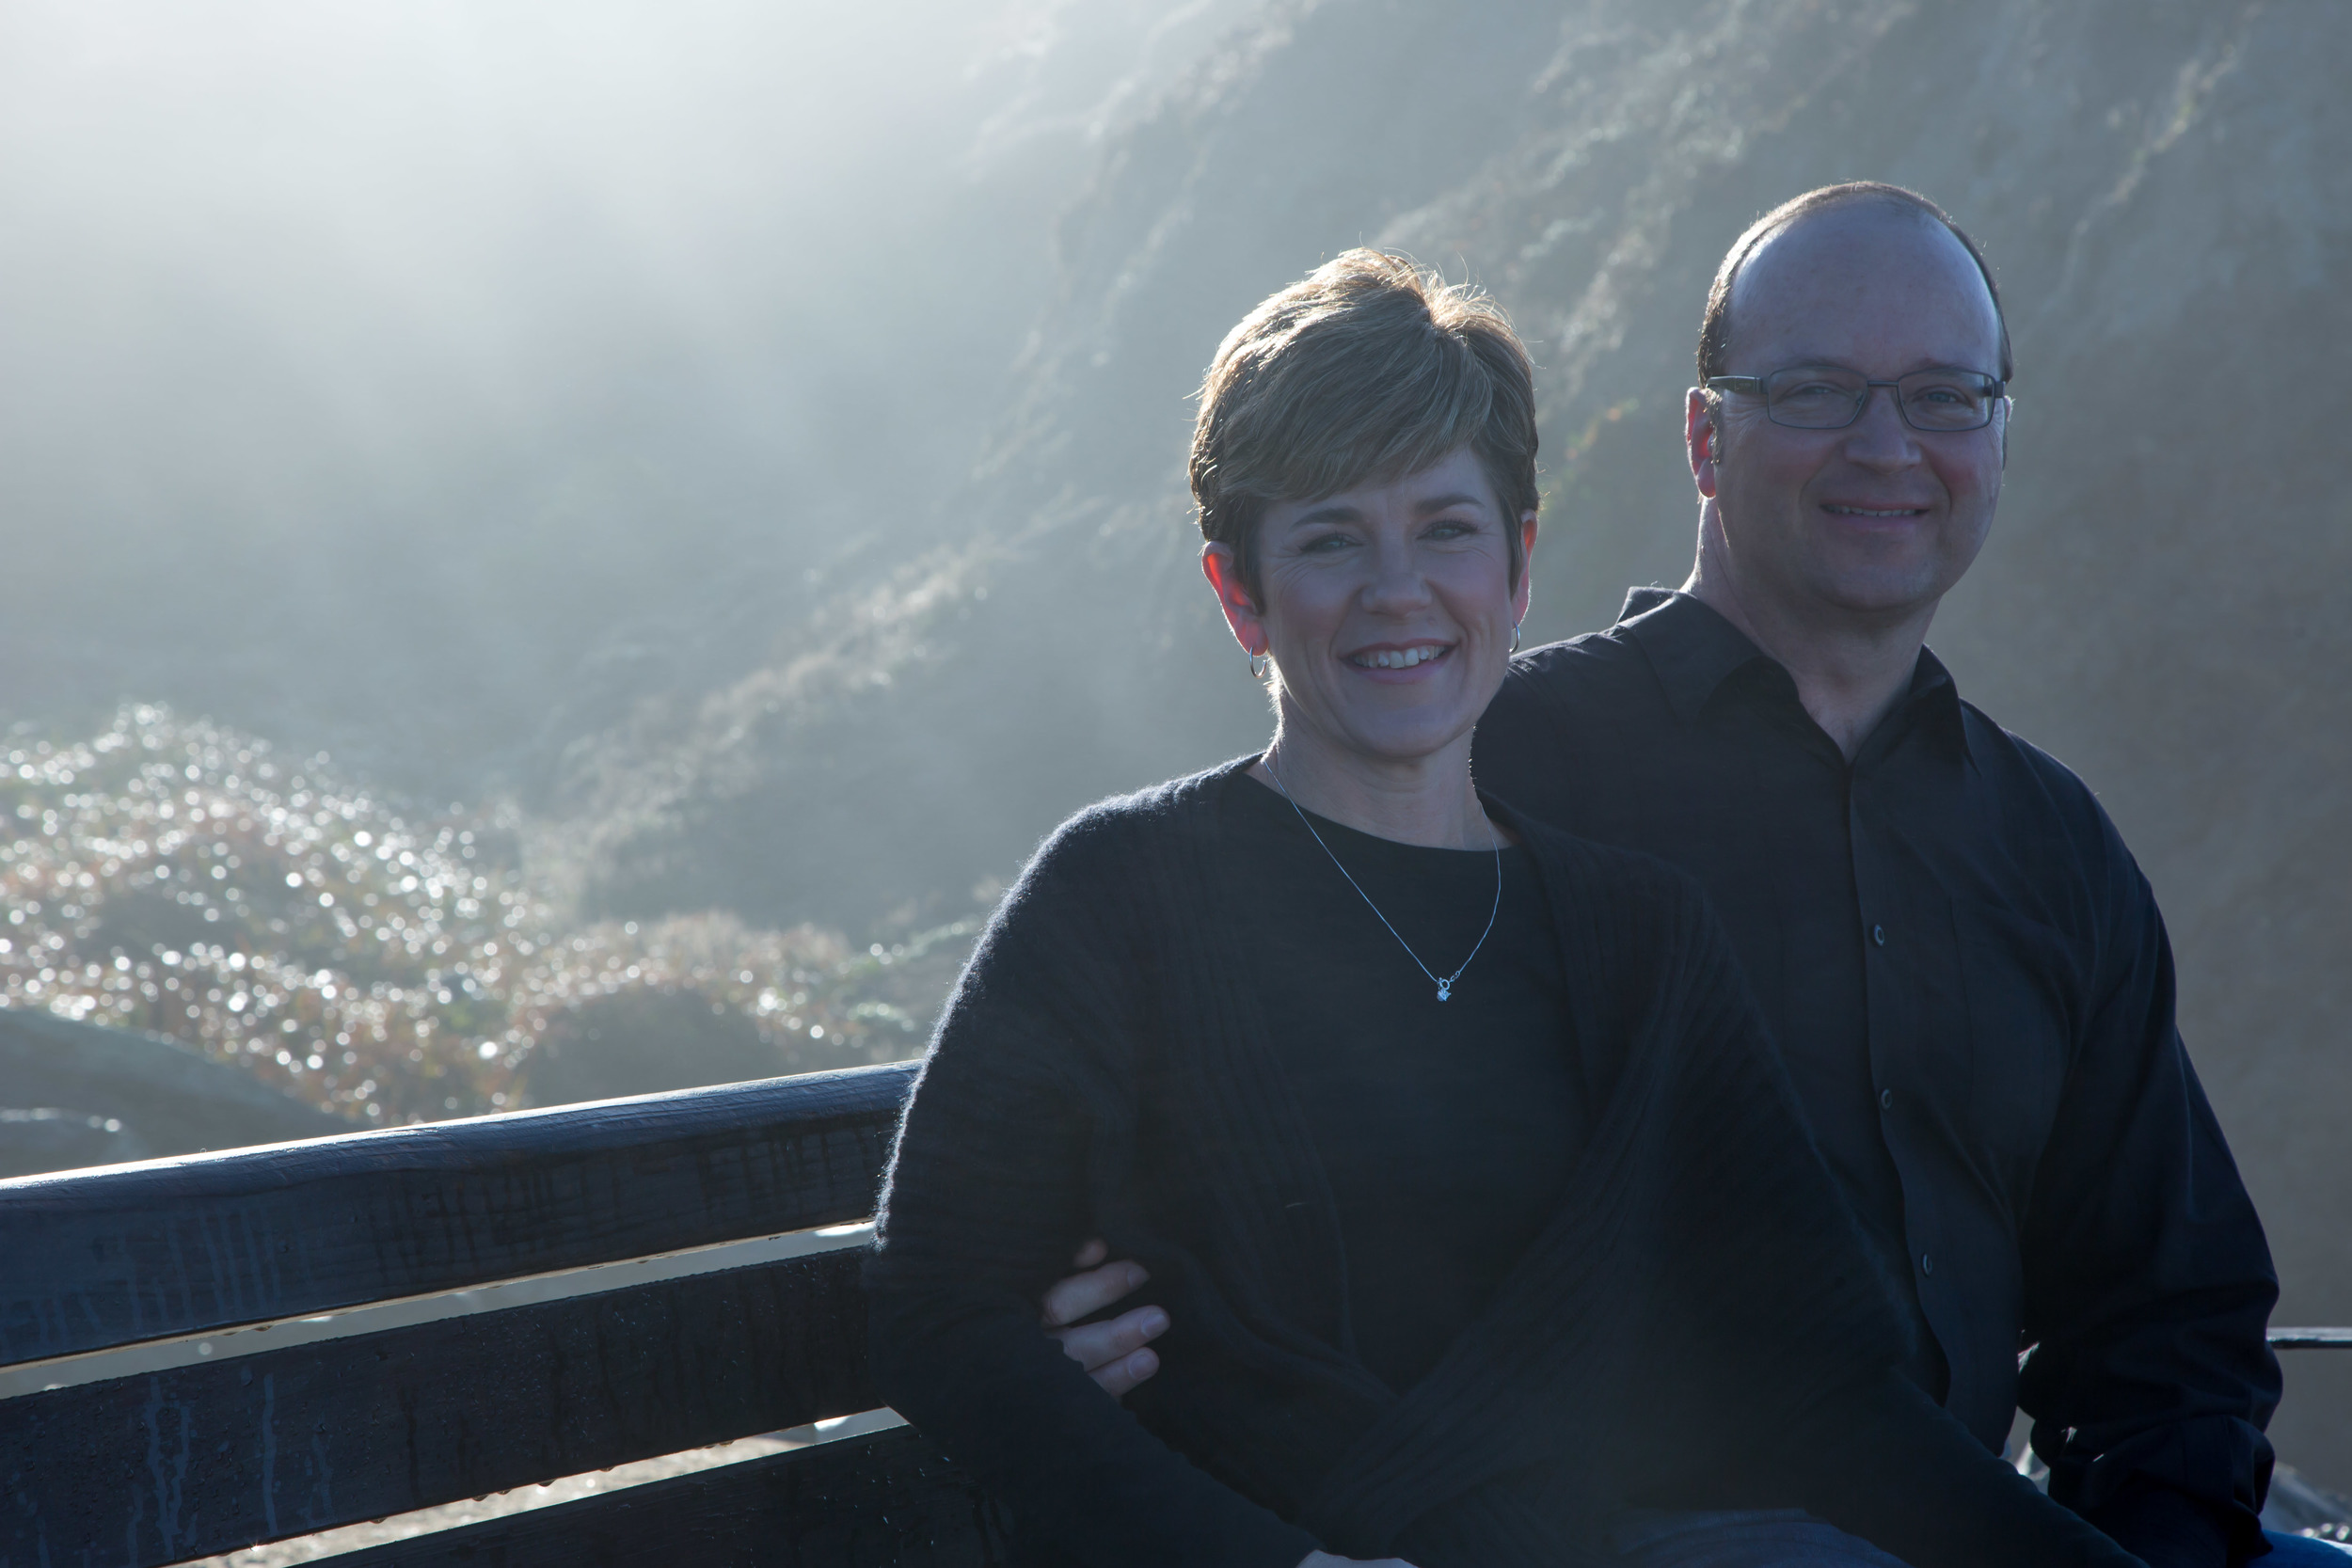 Sometimes over or under exposed shots with the sun behind your subjects can make for a really interesting photo.